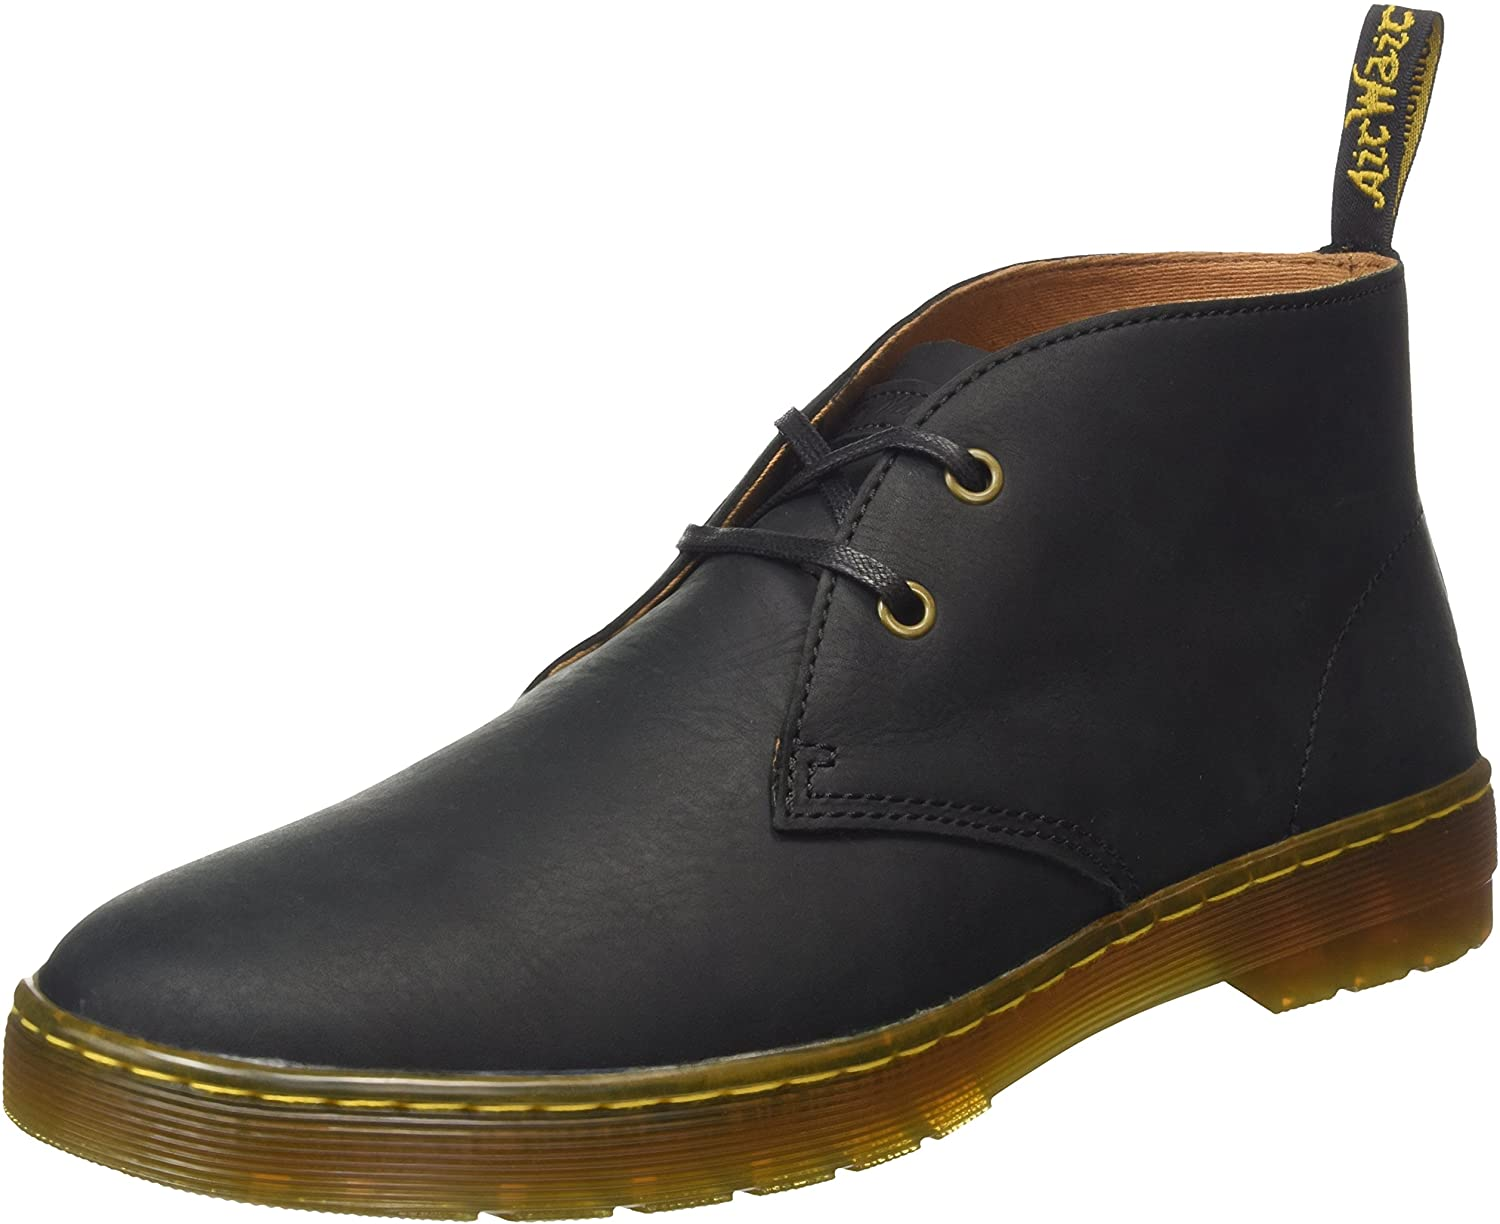 Dr Martens Cabrillo Mens 2 hole lace boots in Gaucho leather upper 16593001